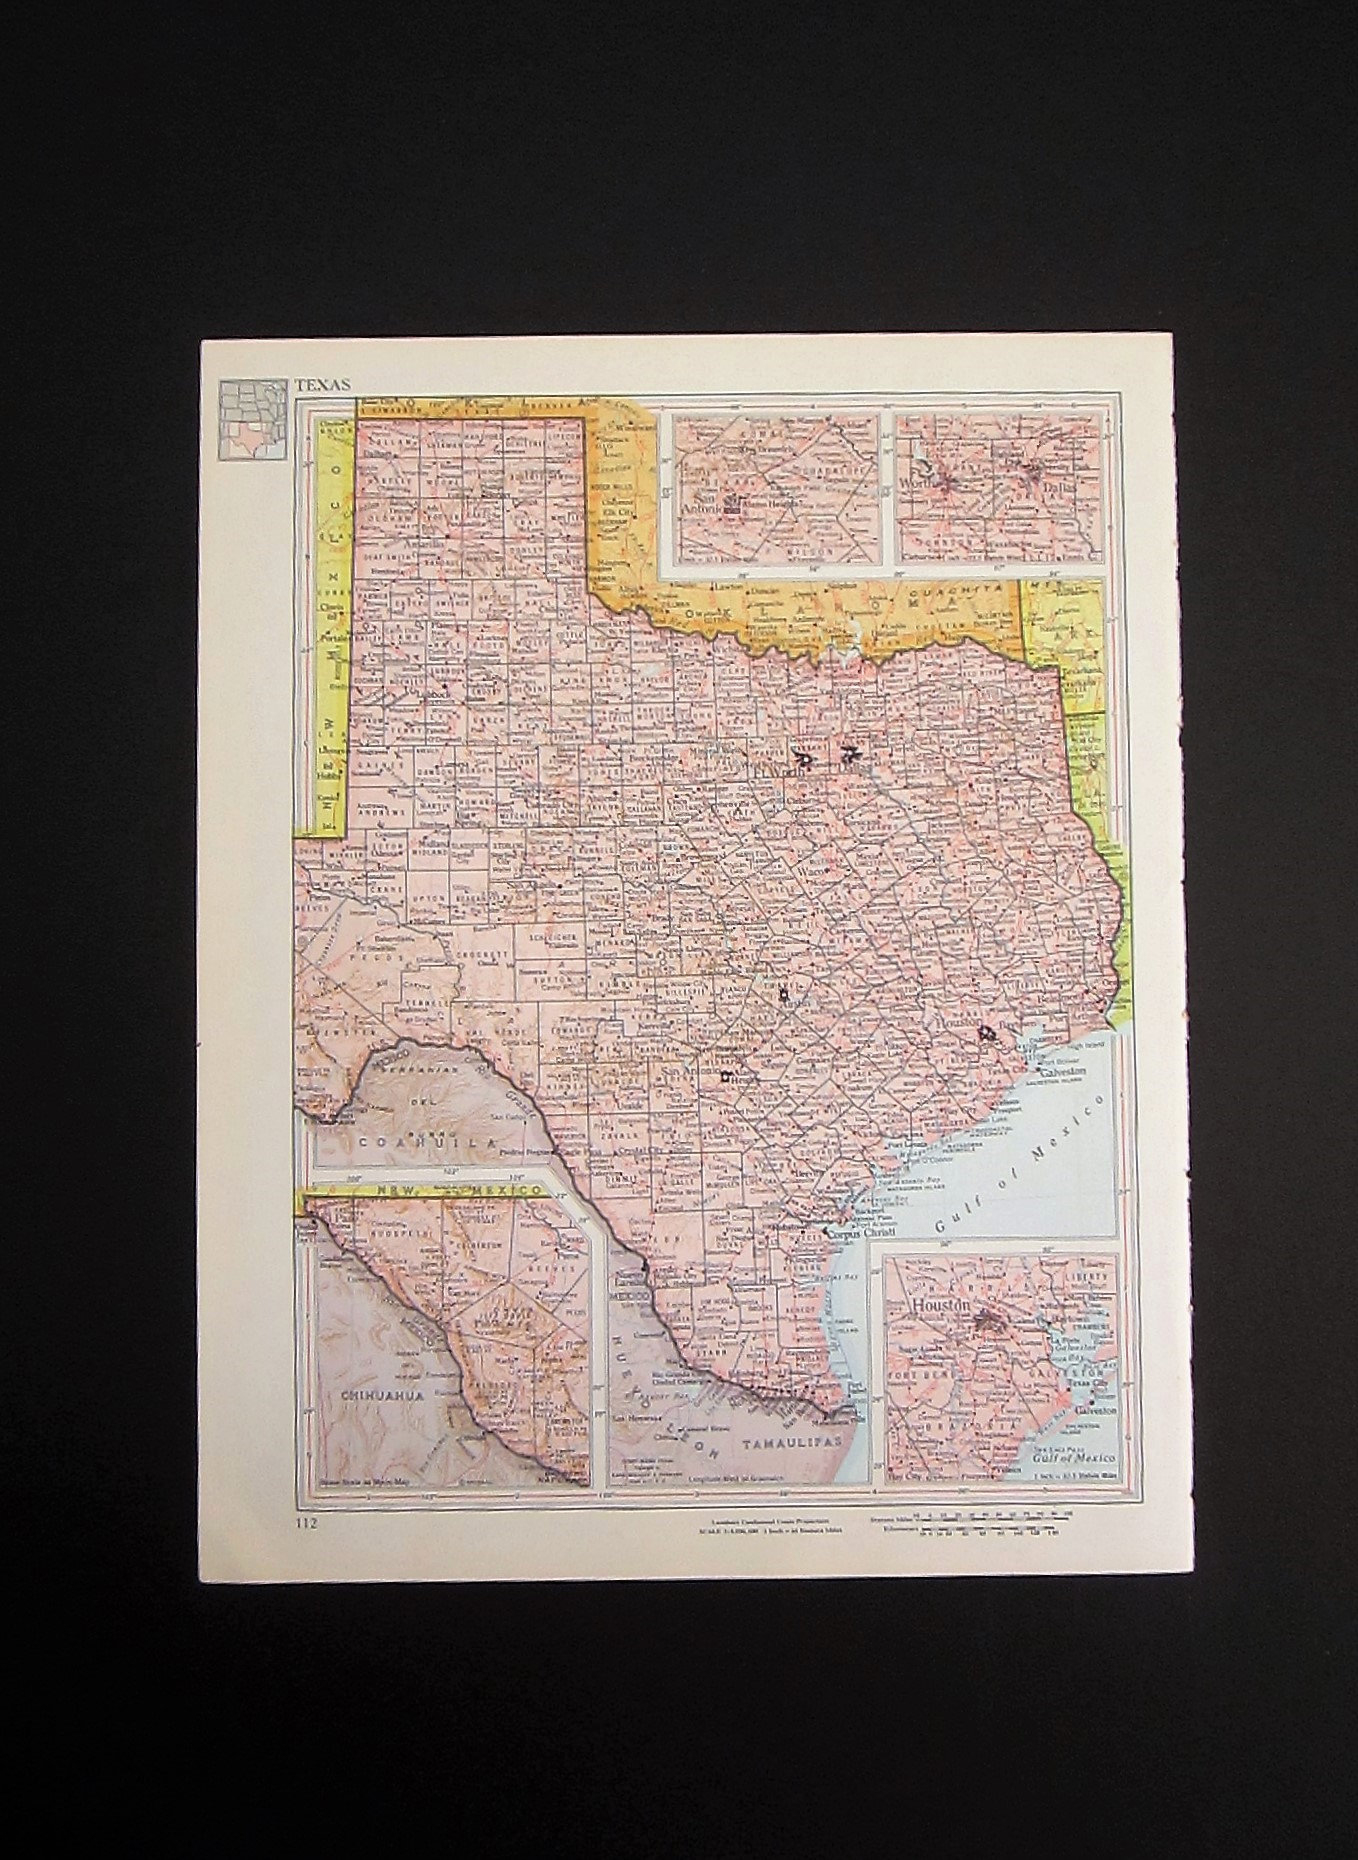 Vintage 1960 Texas Map / Map Wall Art / Office Decor / Texas | Etsy - Old Texas Map Wall Art